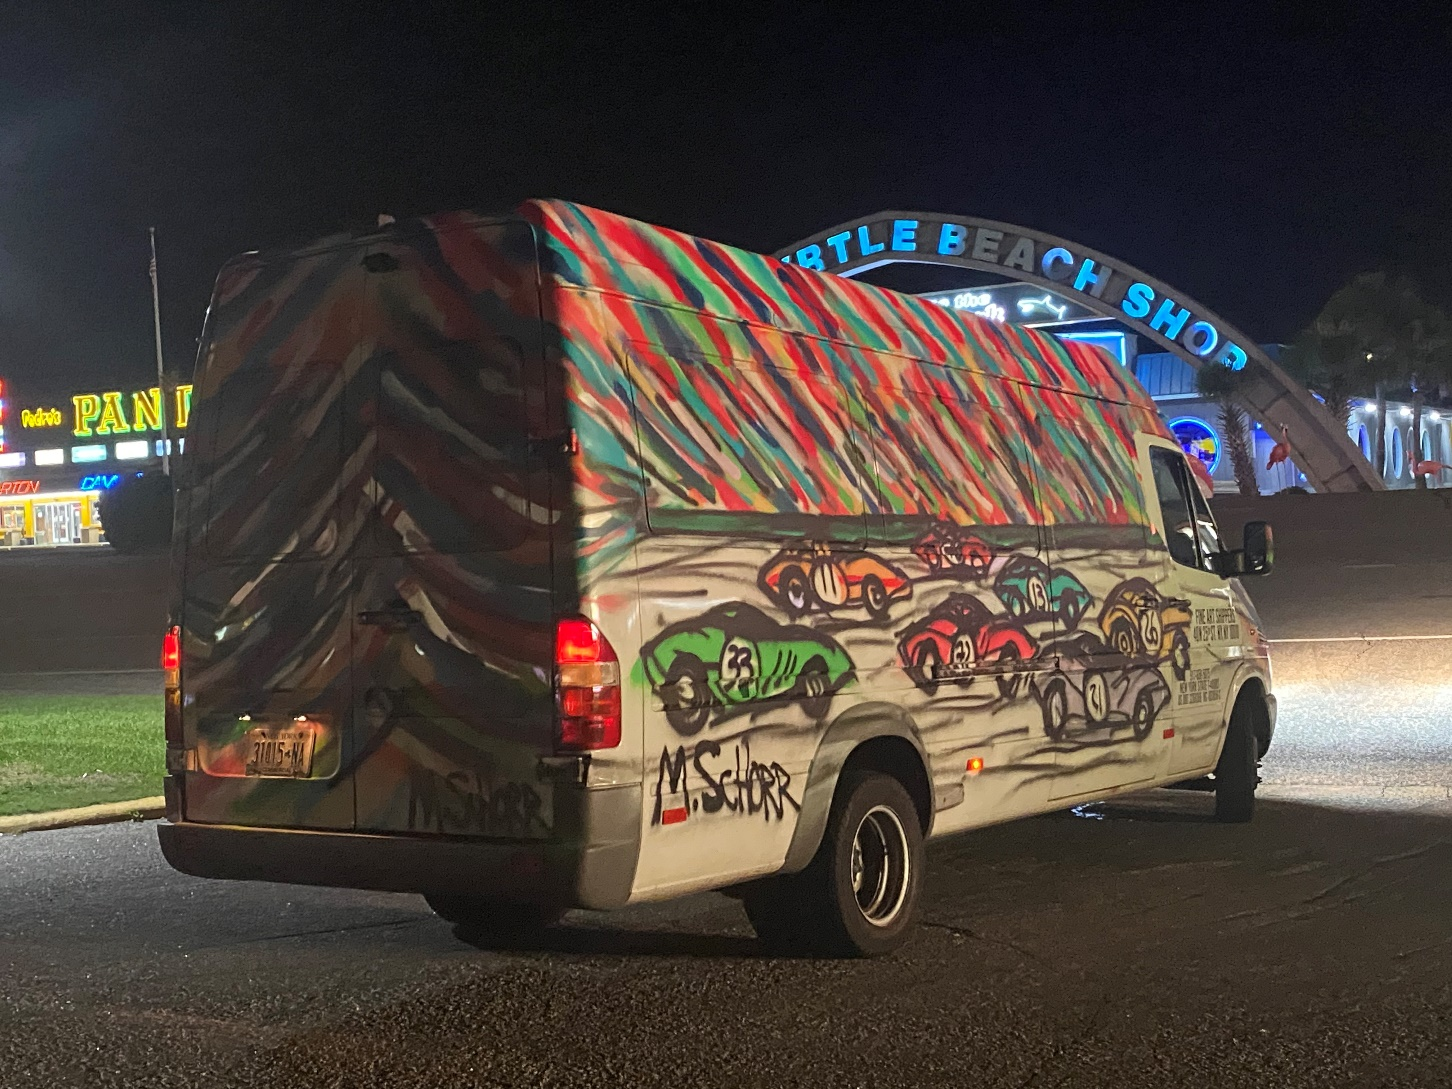 The Best Shipping Company for Artwork Transportation on the East Coast